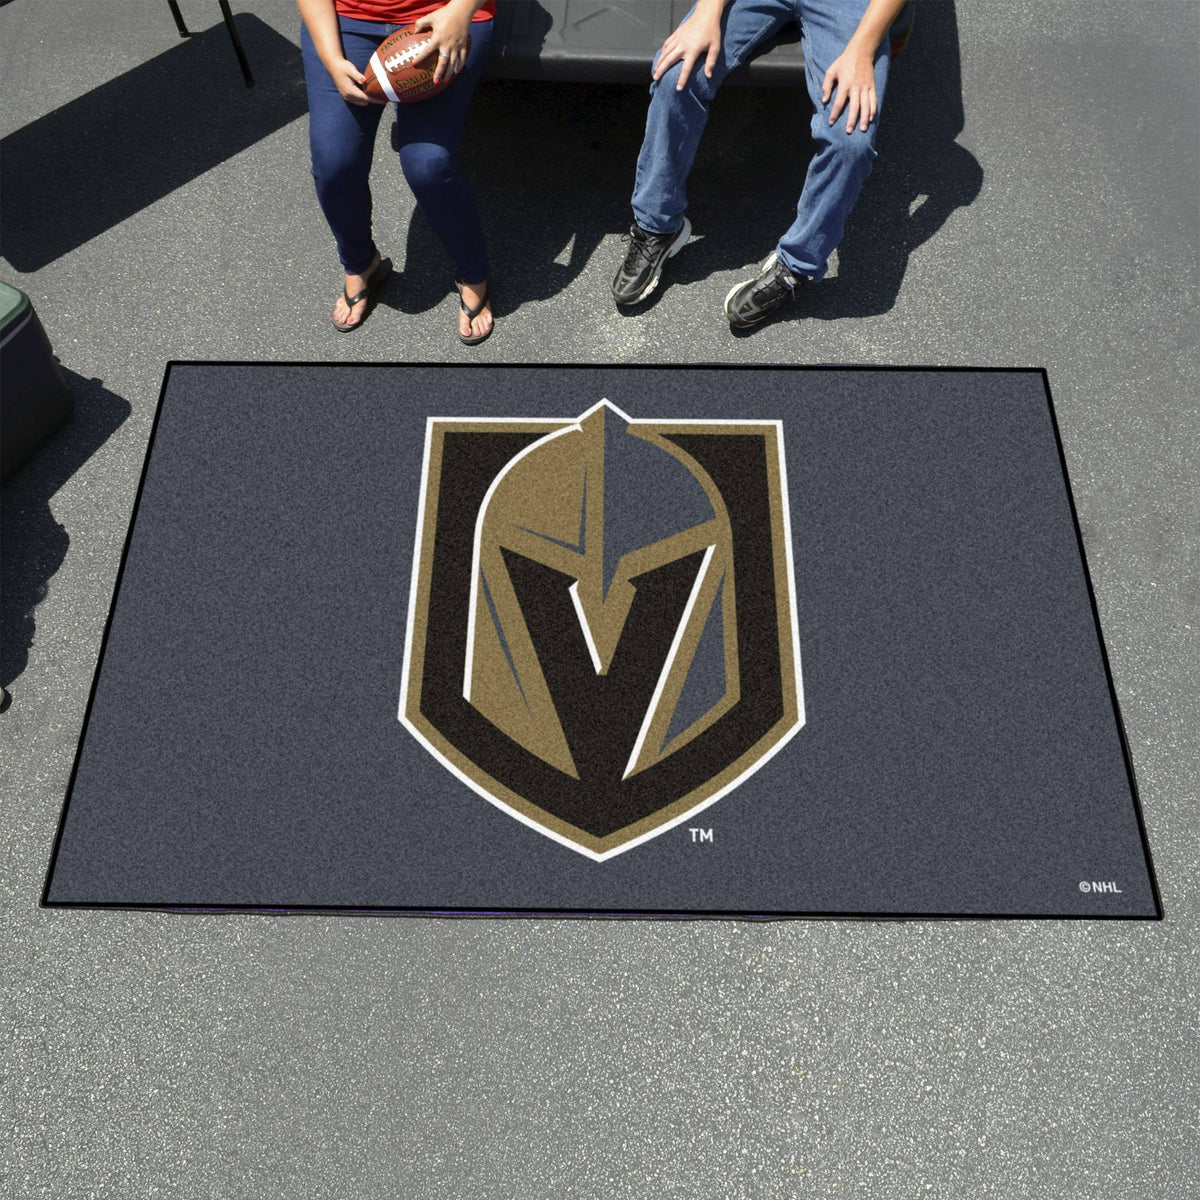 NHL - Ulti-Mat NHL Mats, Rectangular Mats, Ulti-Mat, NHL, Home Fan Mats Vegas Golden Knights